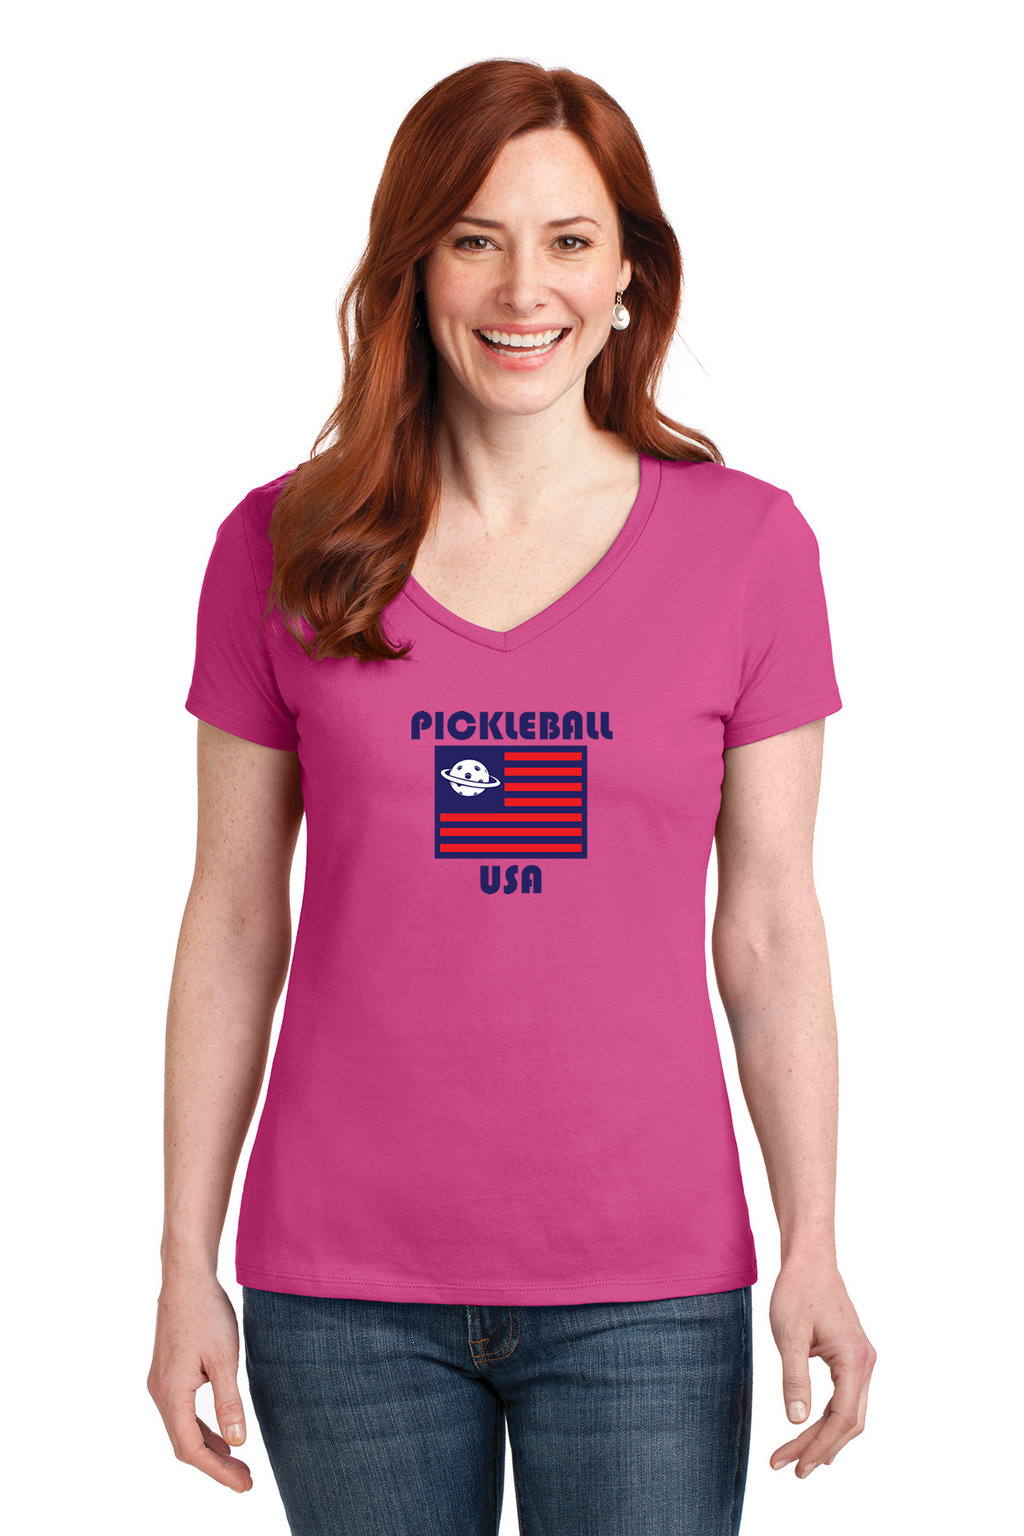 Ladies V-Neck 100% Cotton Short Sleeve Shirt 'PB USA'